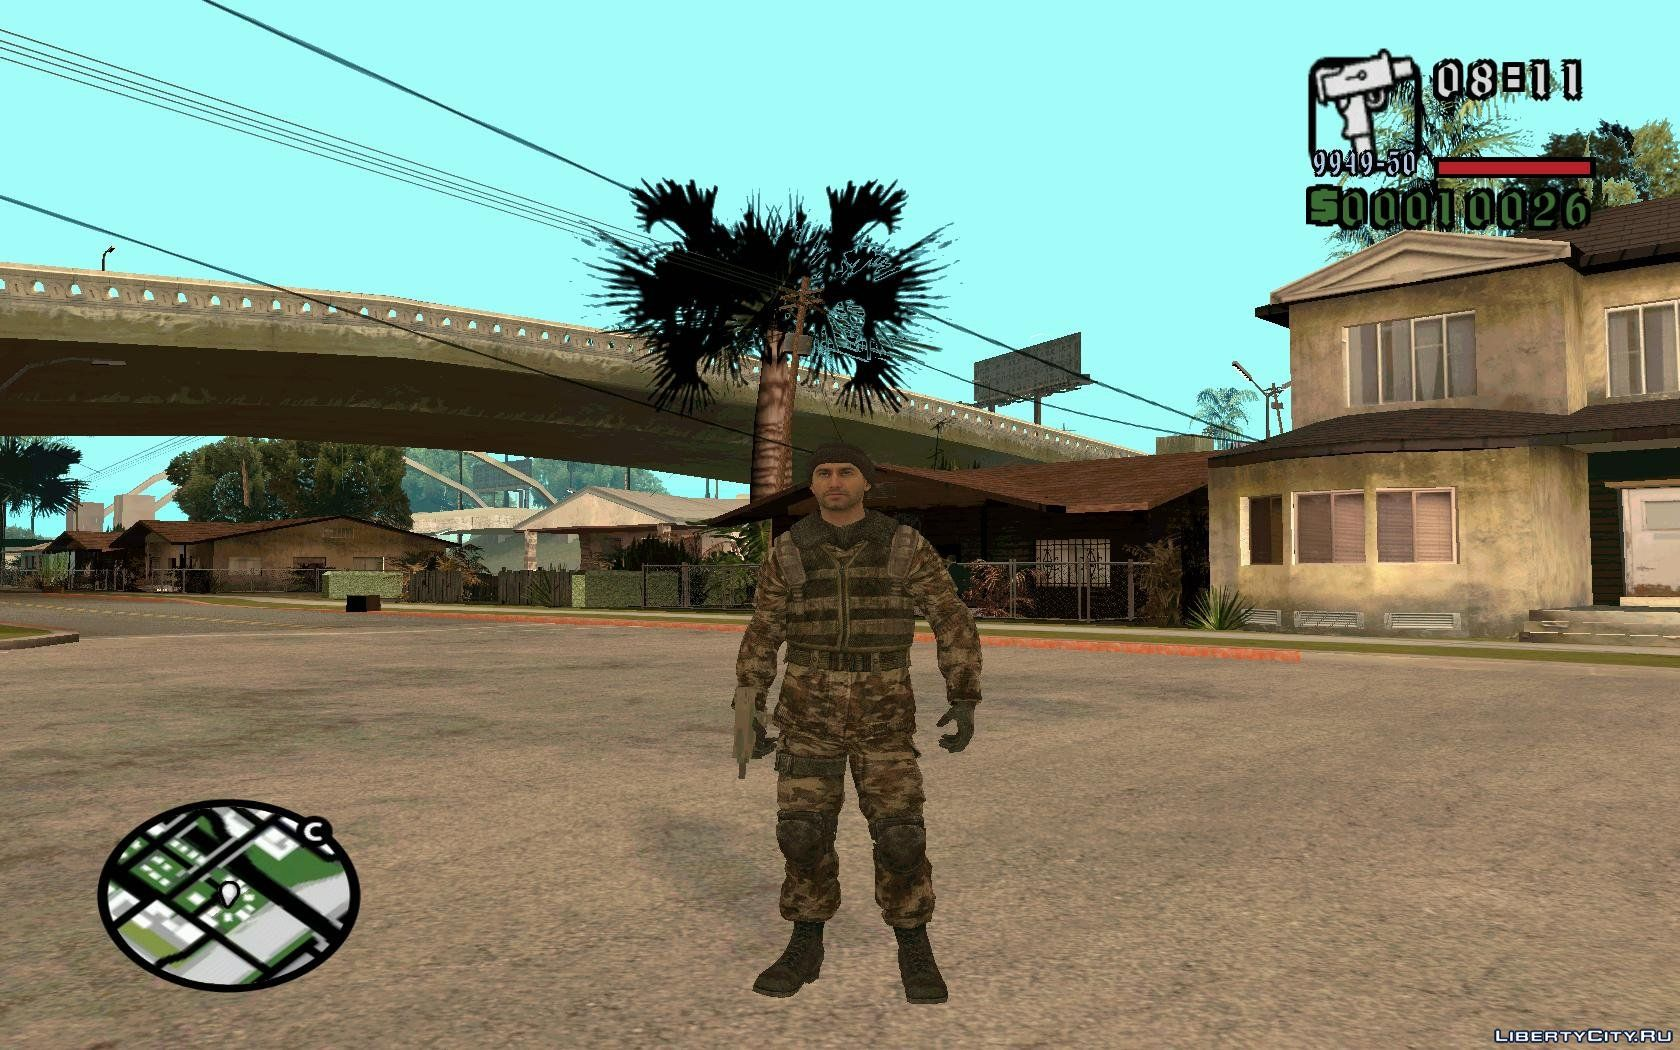 Vladimir Makarov 1996 From Mw3 For Gta San Andreas Images, Photos, Reviews